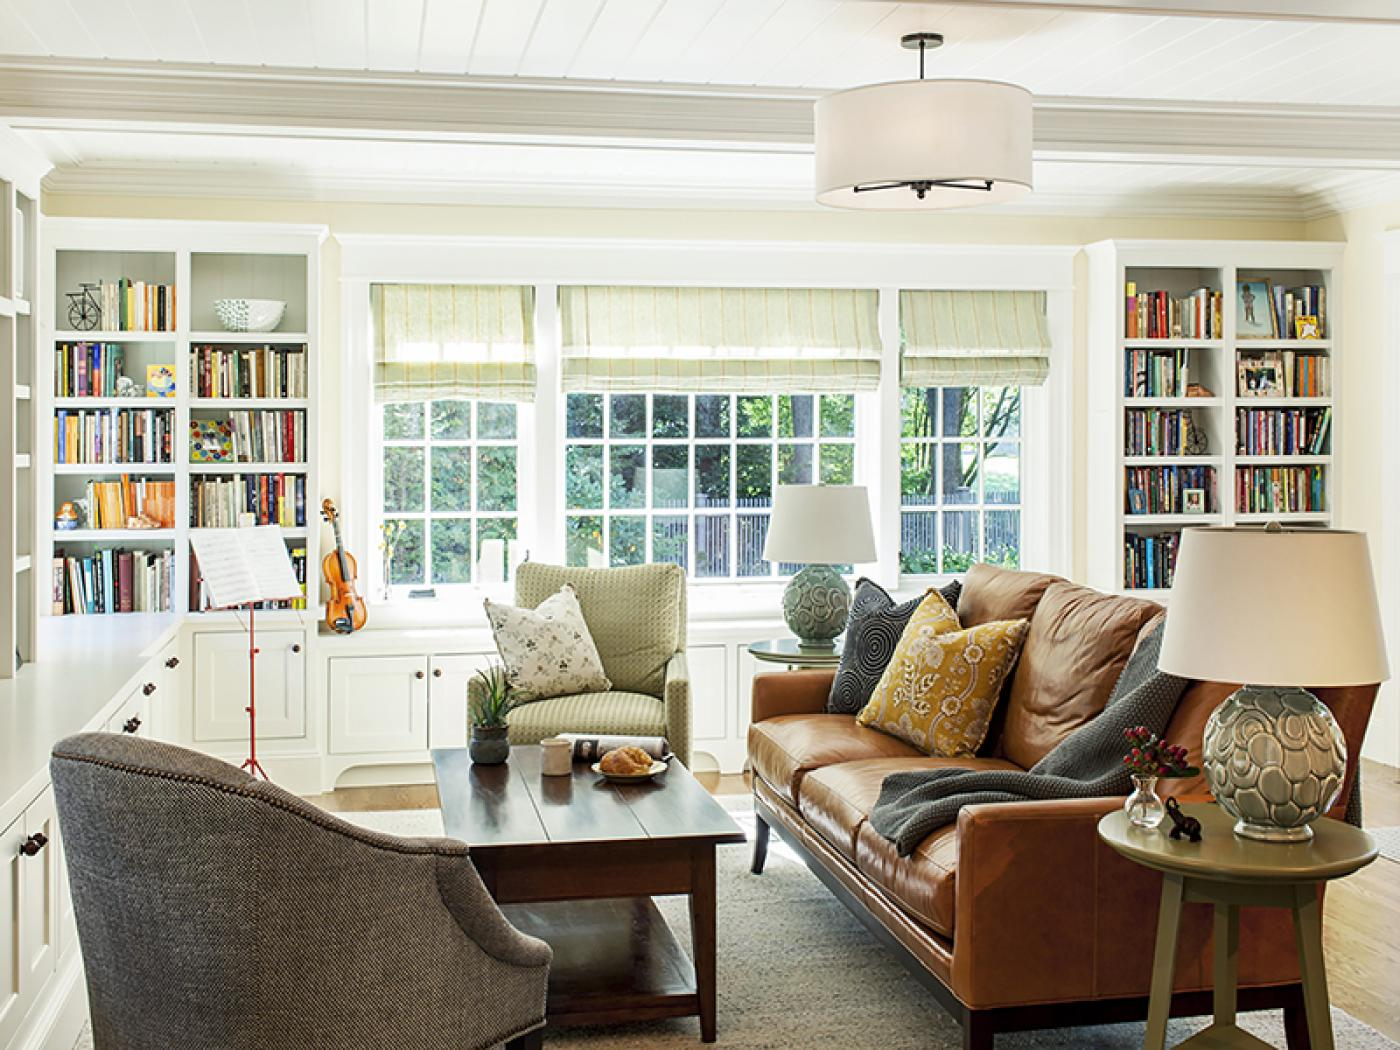 New england home by kmid kate maloney interior design - New home interior design ...